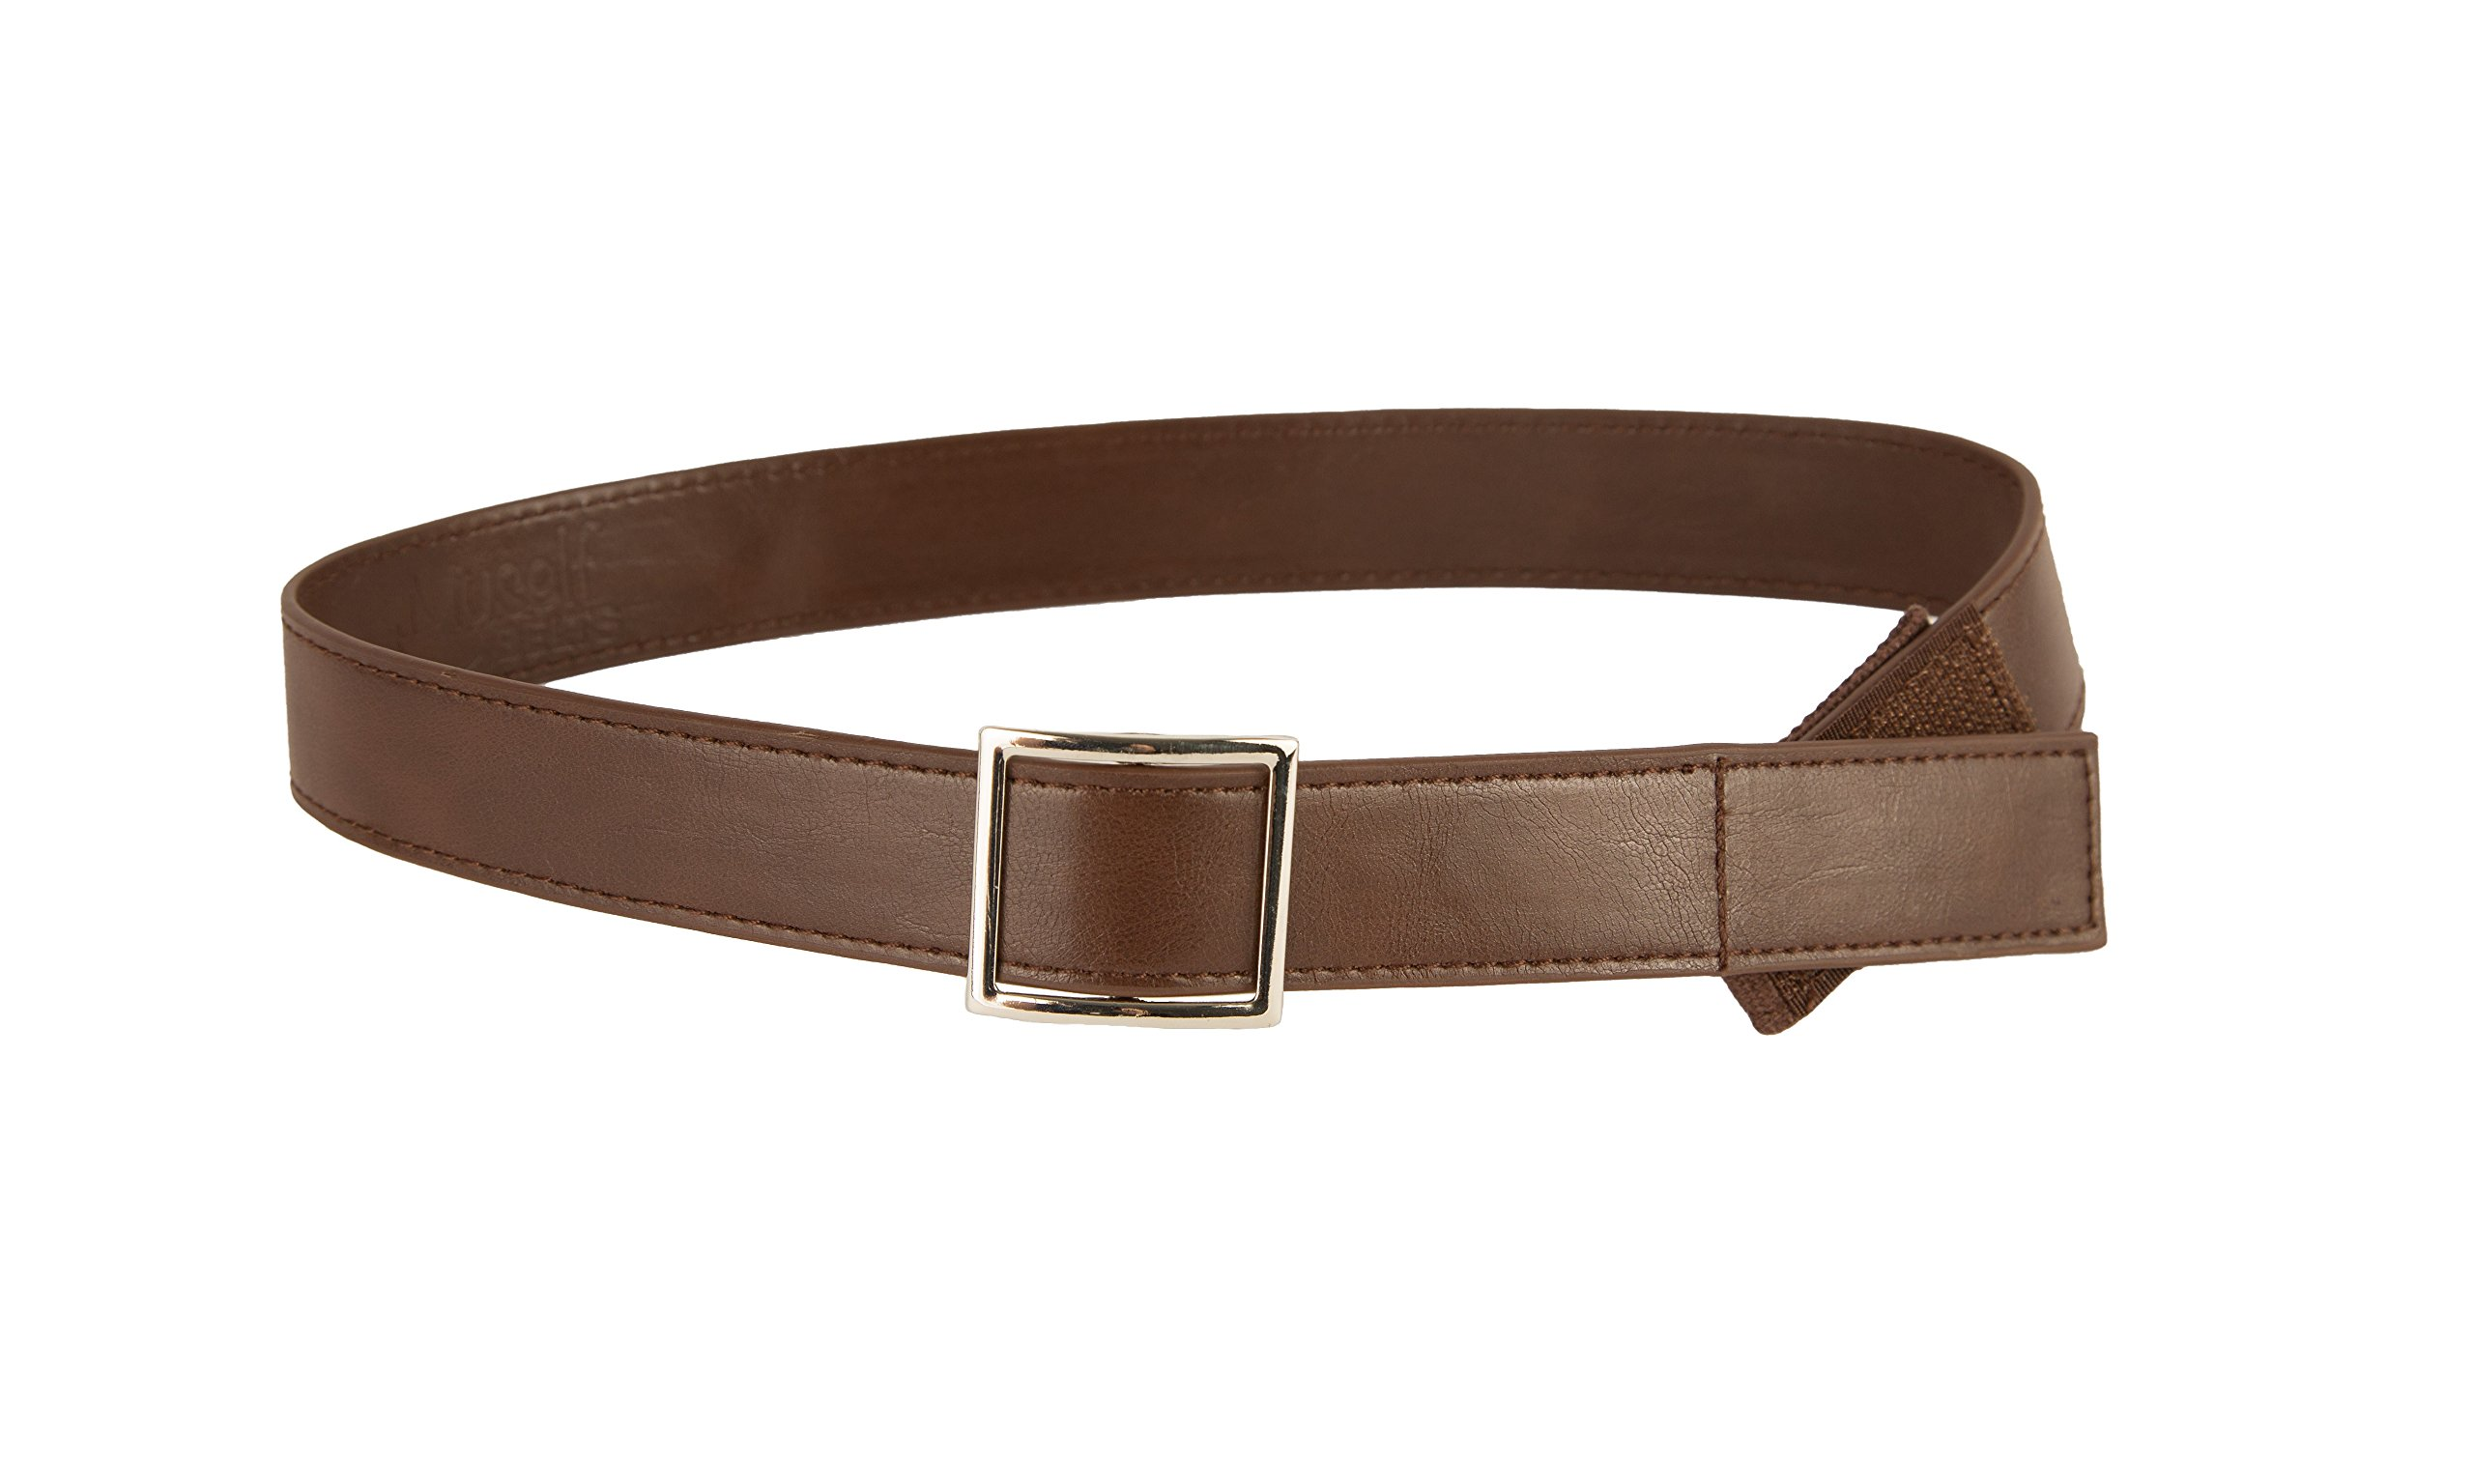 Myself Belts - Brown Leather Easy Belt with Buckle for Kids and Toddlers (5T)